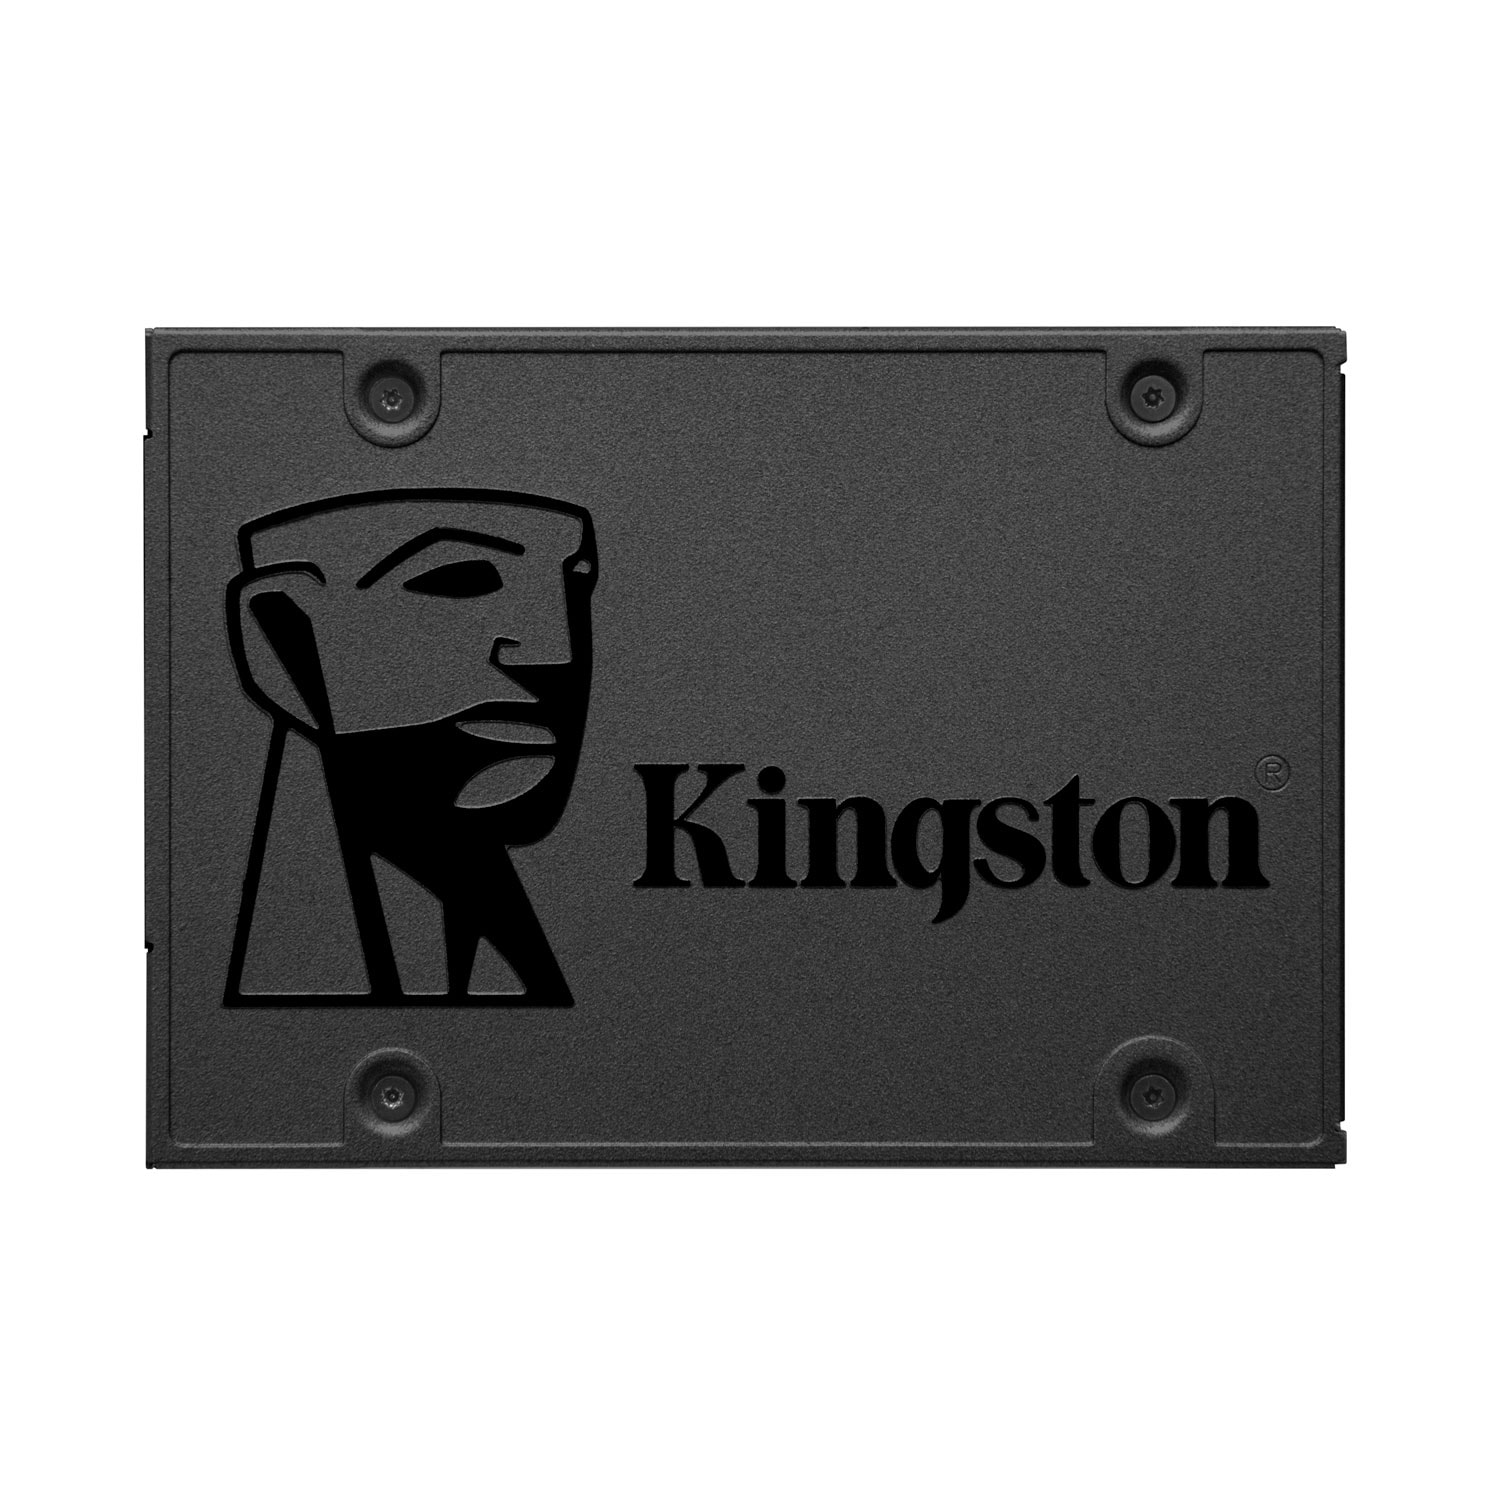 Kingston A400 240-275Go - Disque SSD Kingston - Cybertek.fr - 2